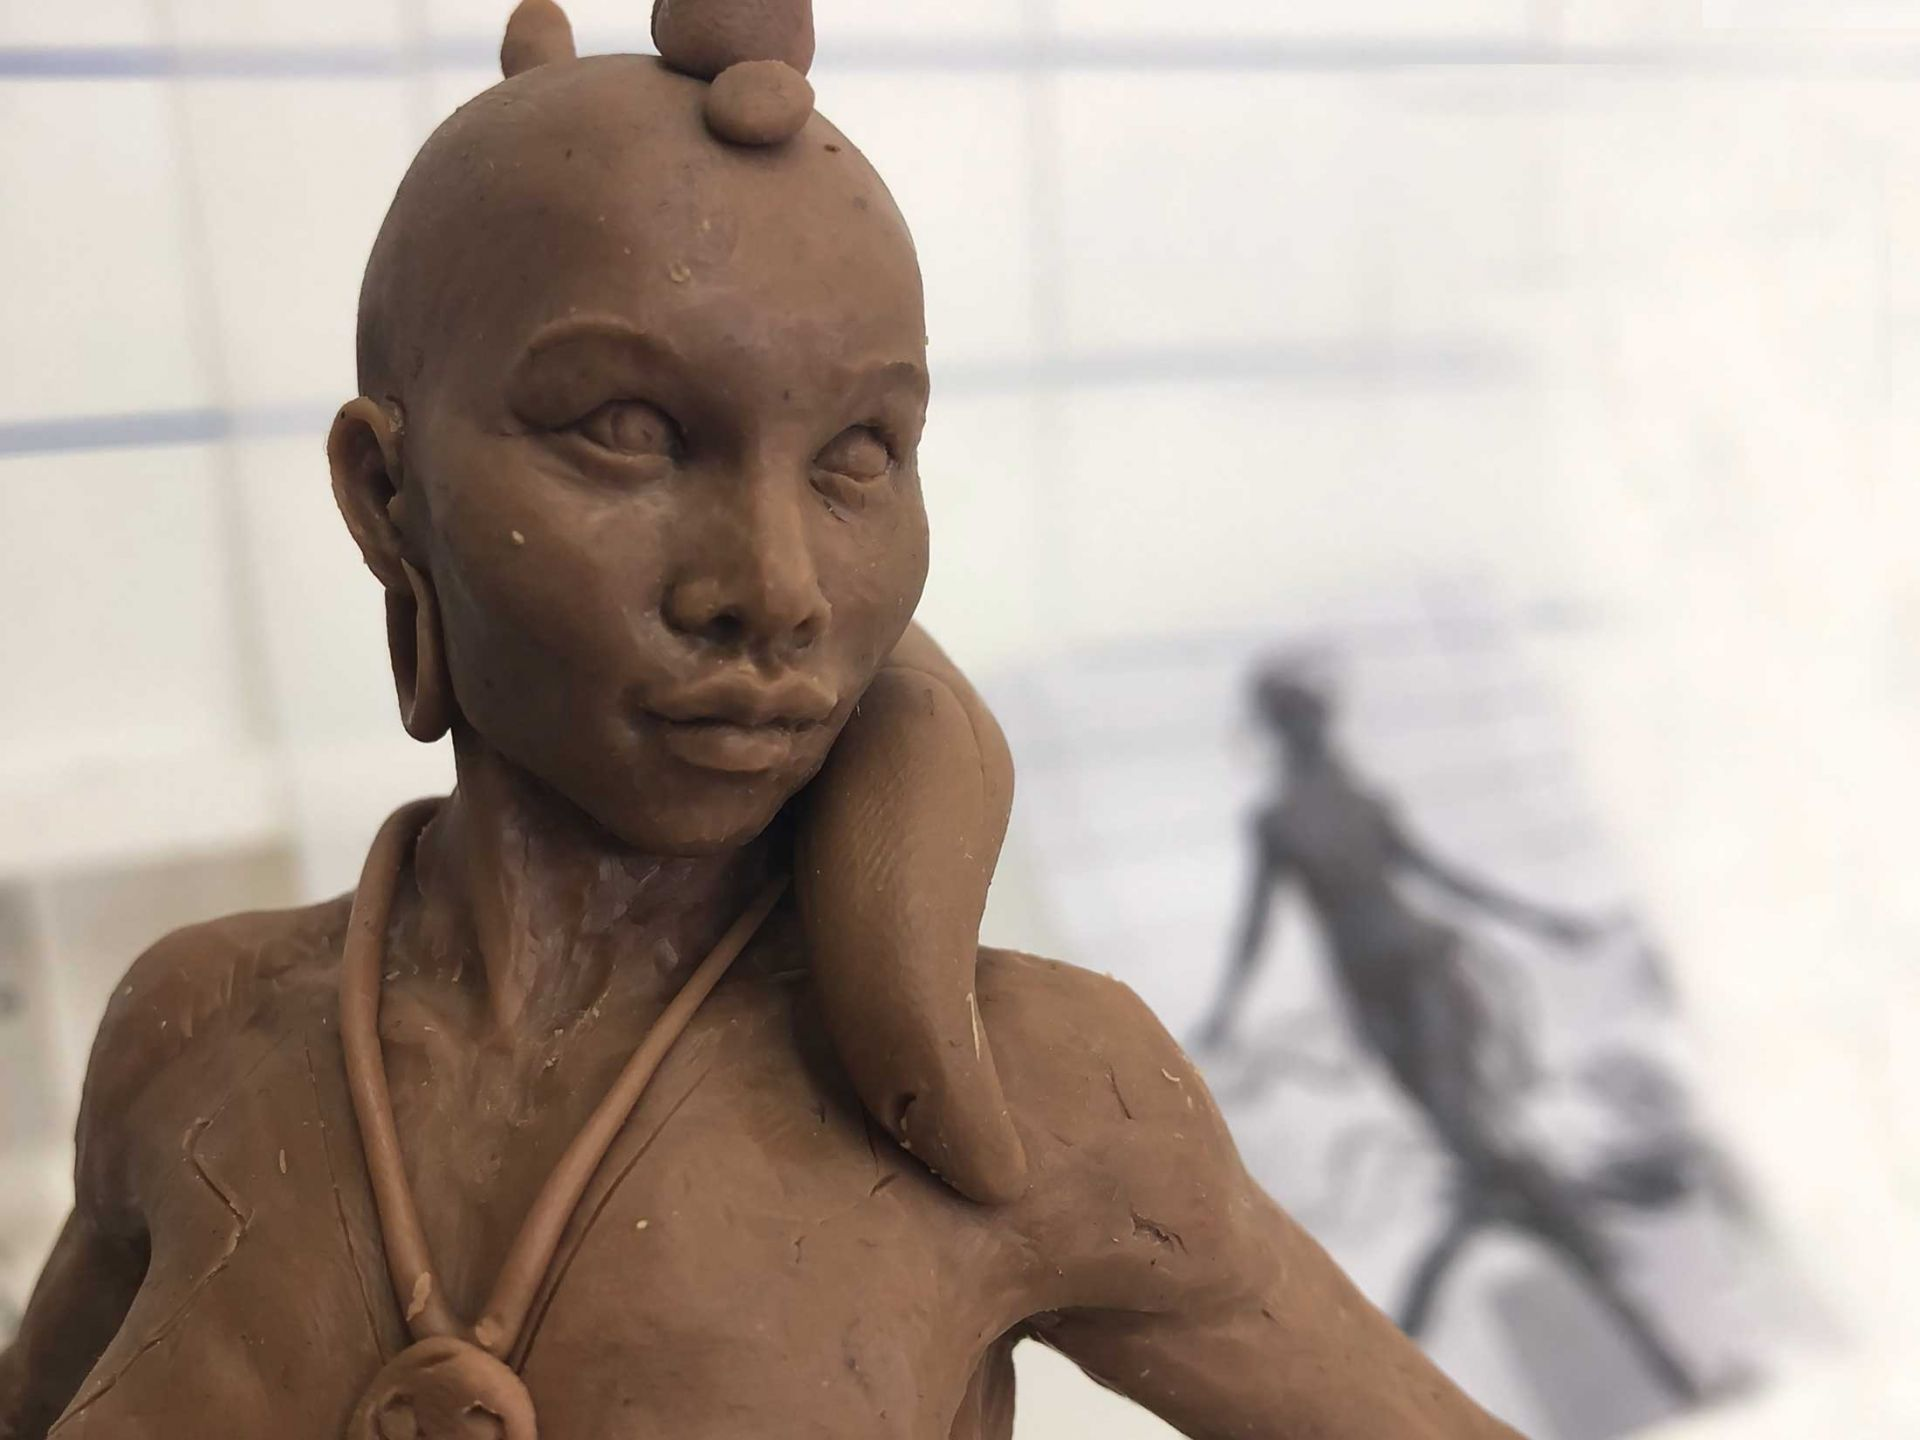 Spur girl sculpture made from clay.